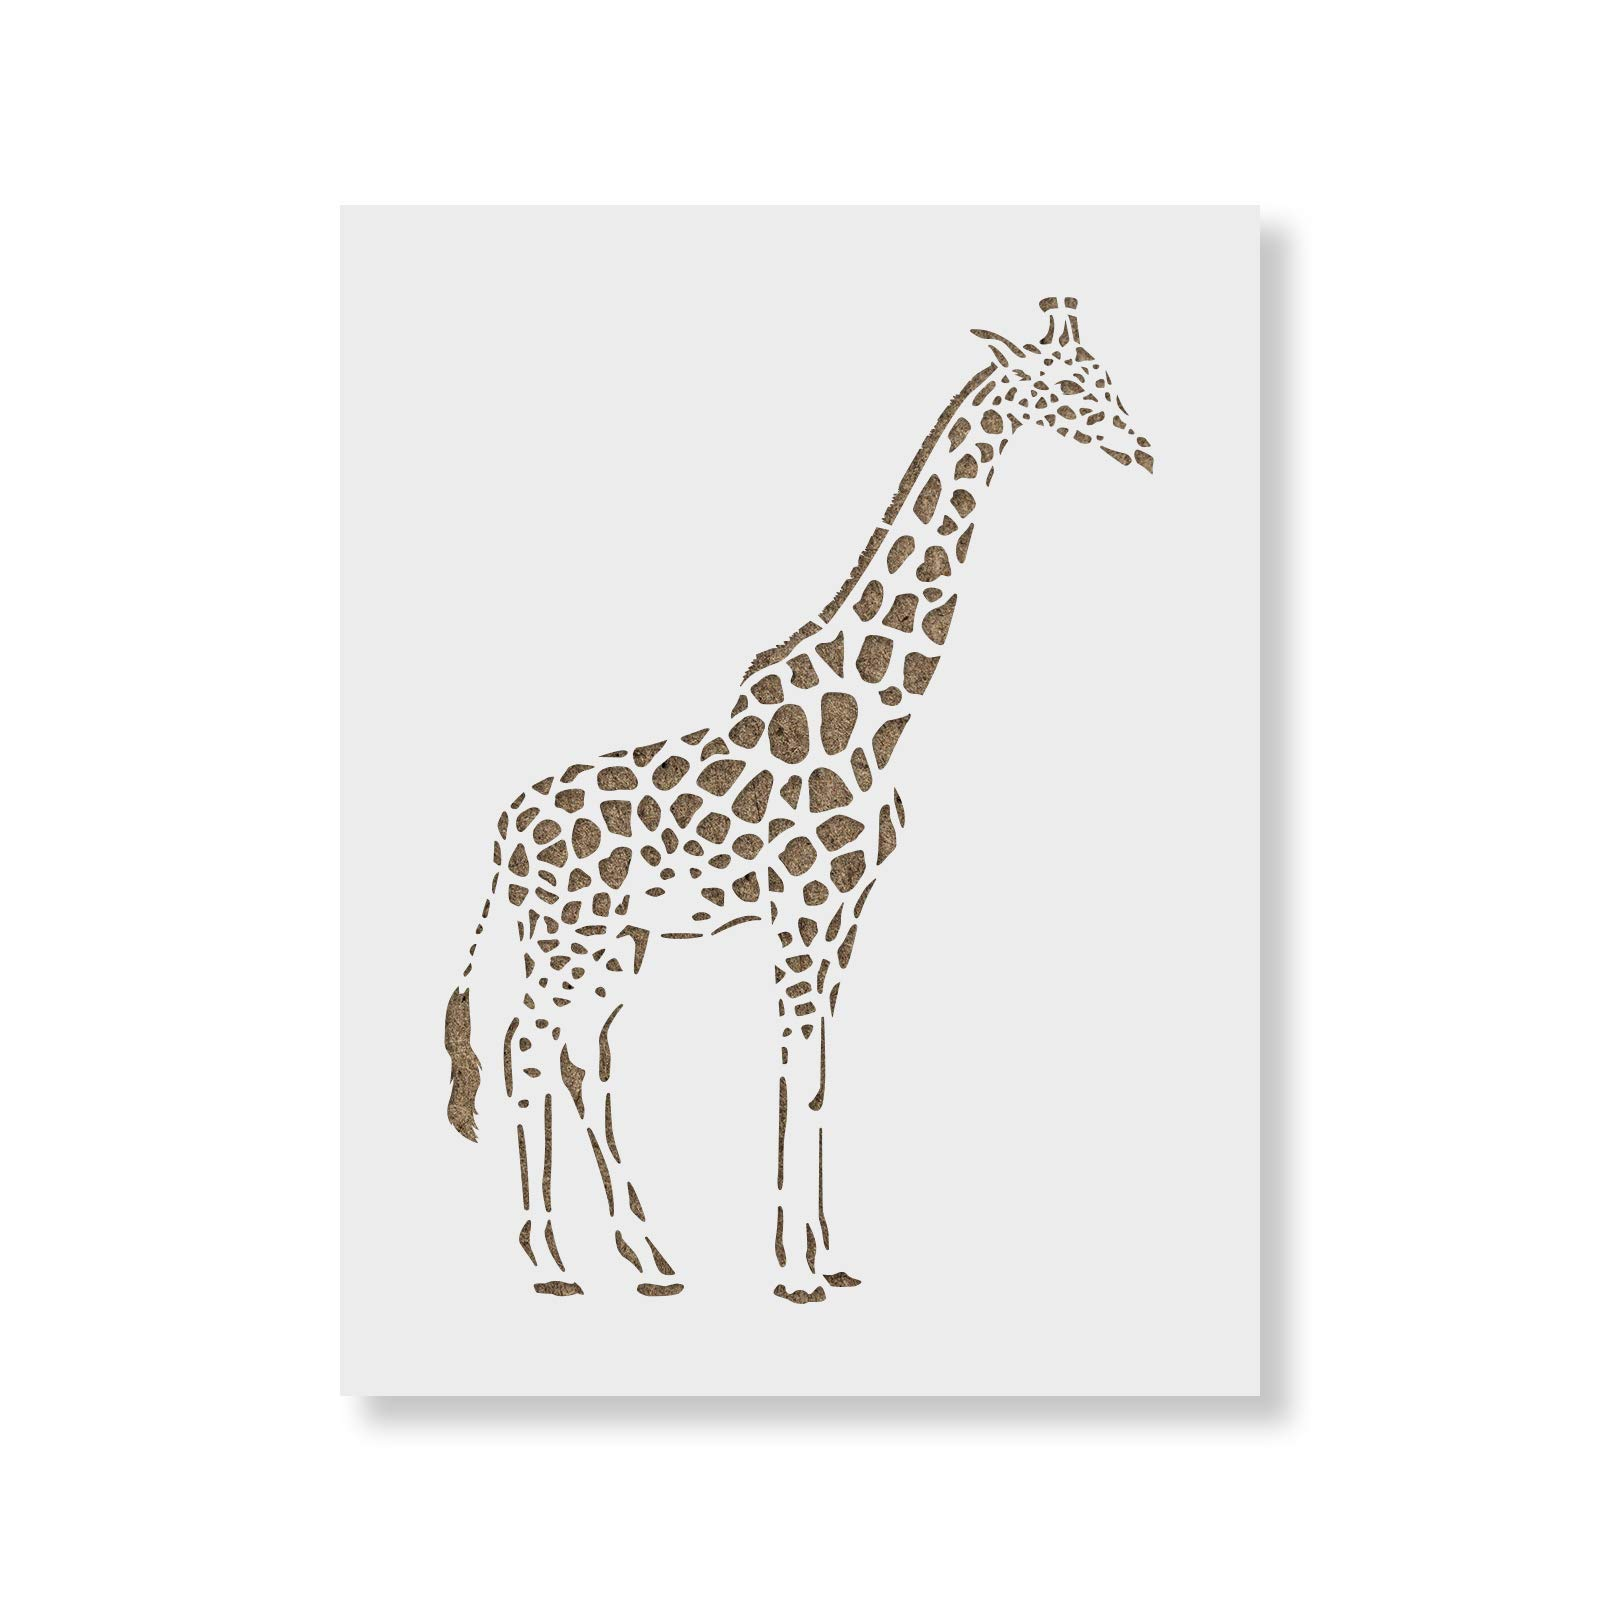 Giraffe Stencil Template - Reusable Stencil with Multiple Sizes Available